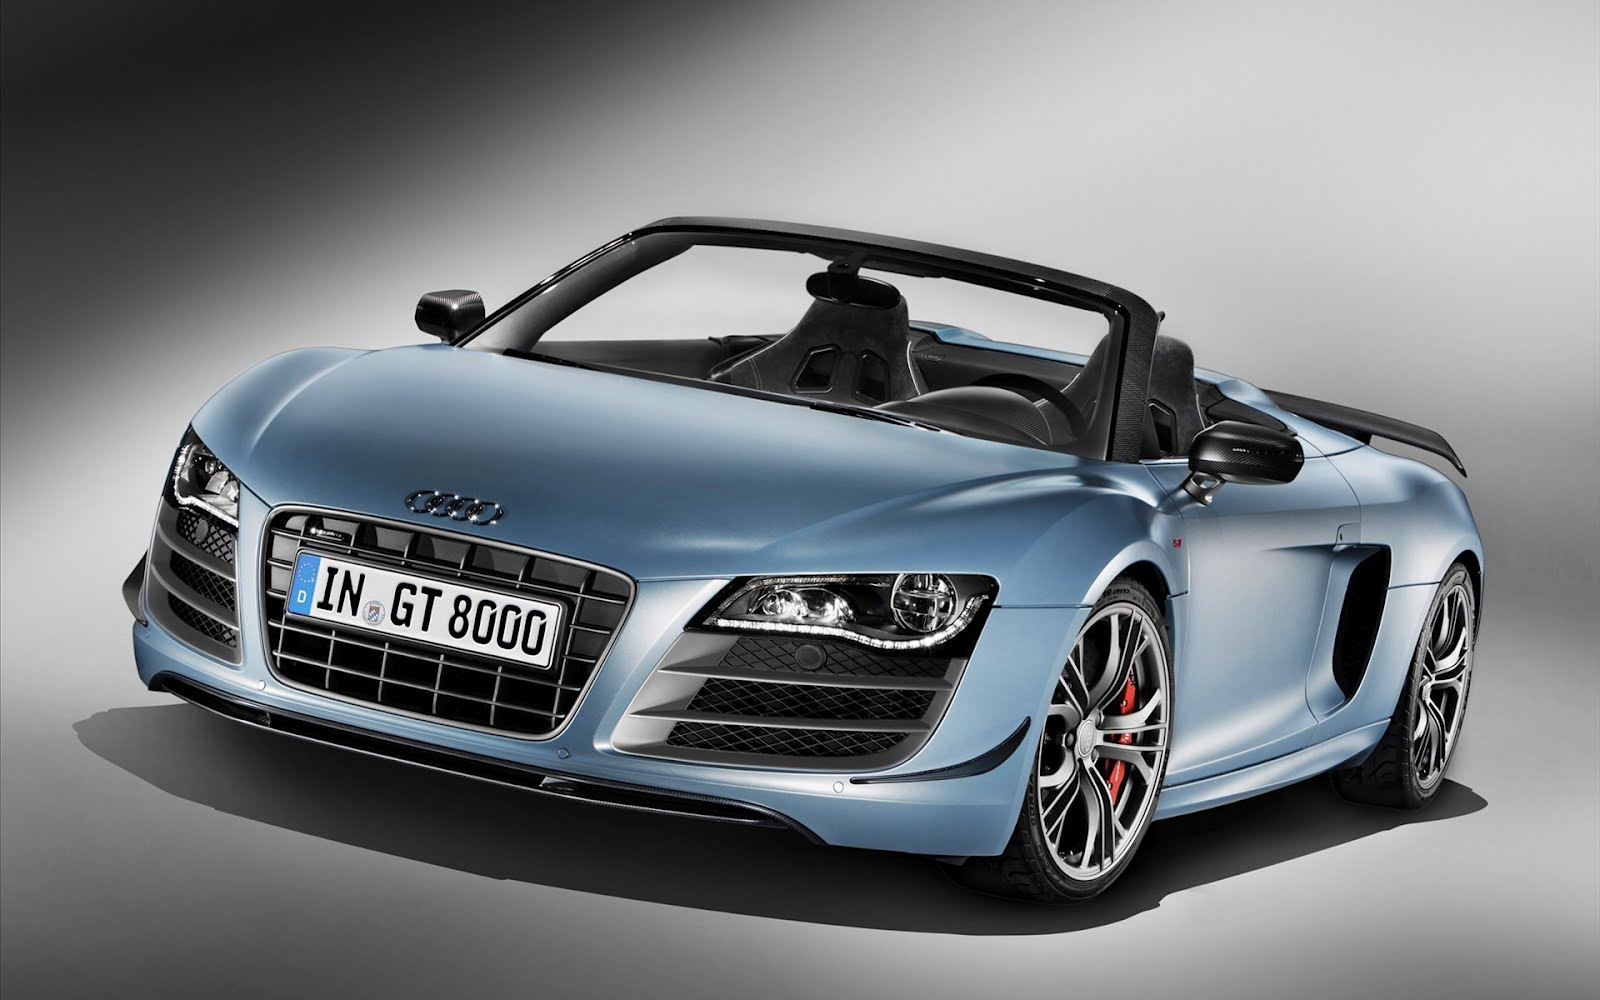 Wallpaper Collections: 2012 Audi R8 GT Spyder